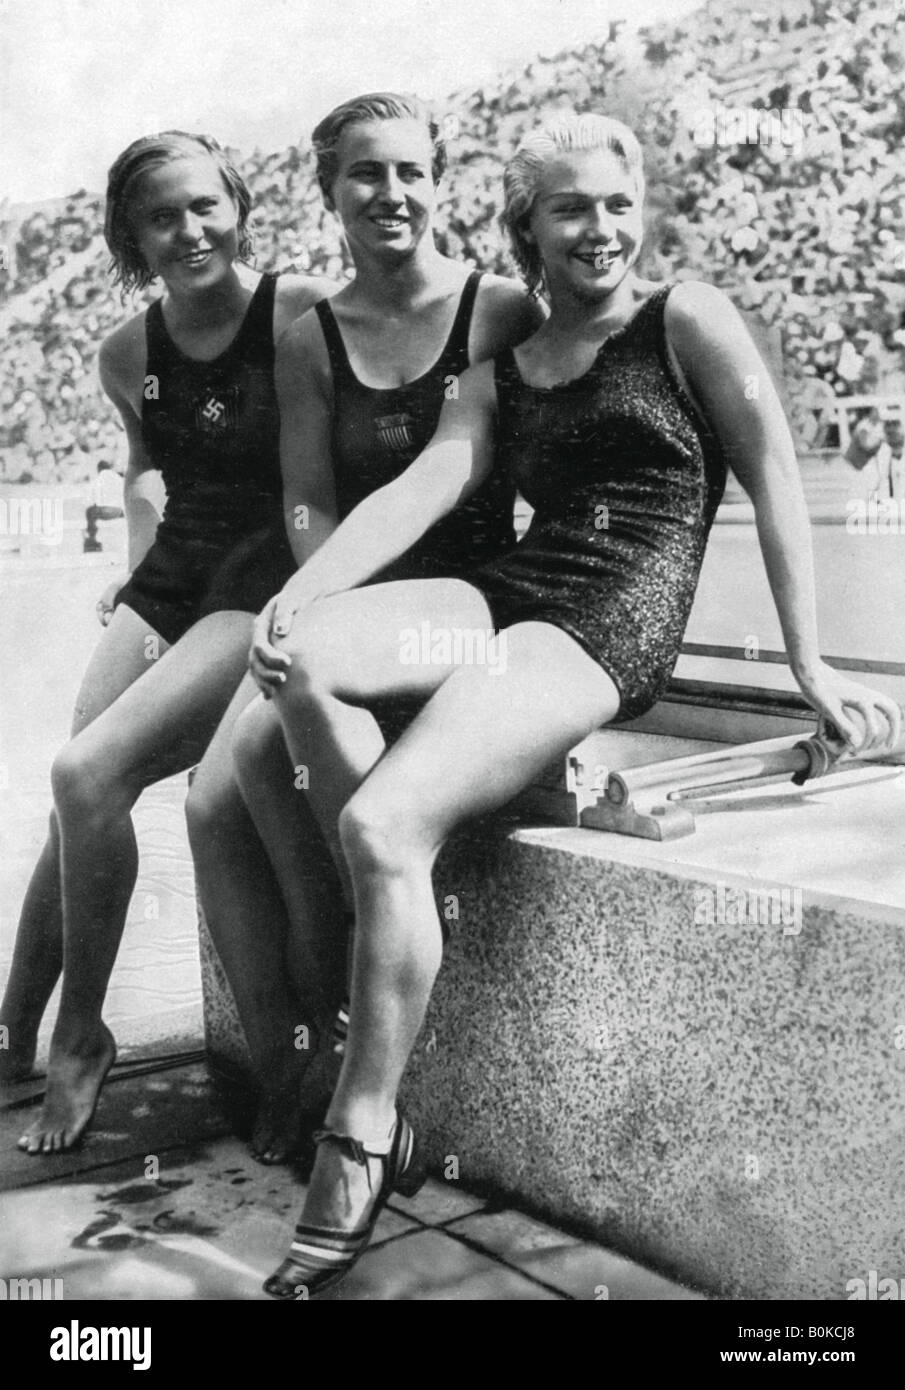 Medallists from the women's platform diving event, Berlin Olympics, 1936. Artist: Unknown - Stock Image